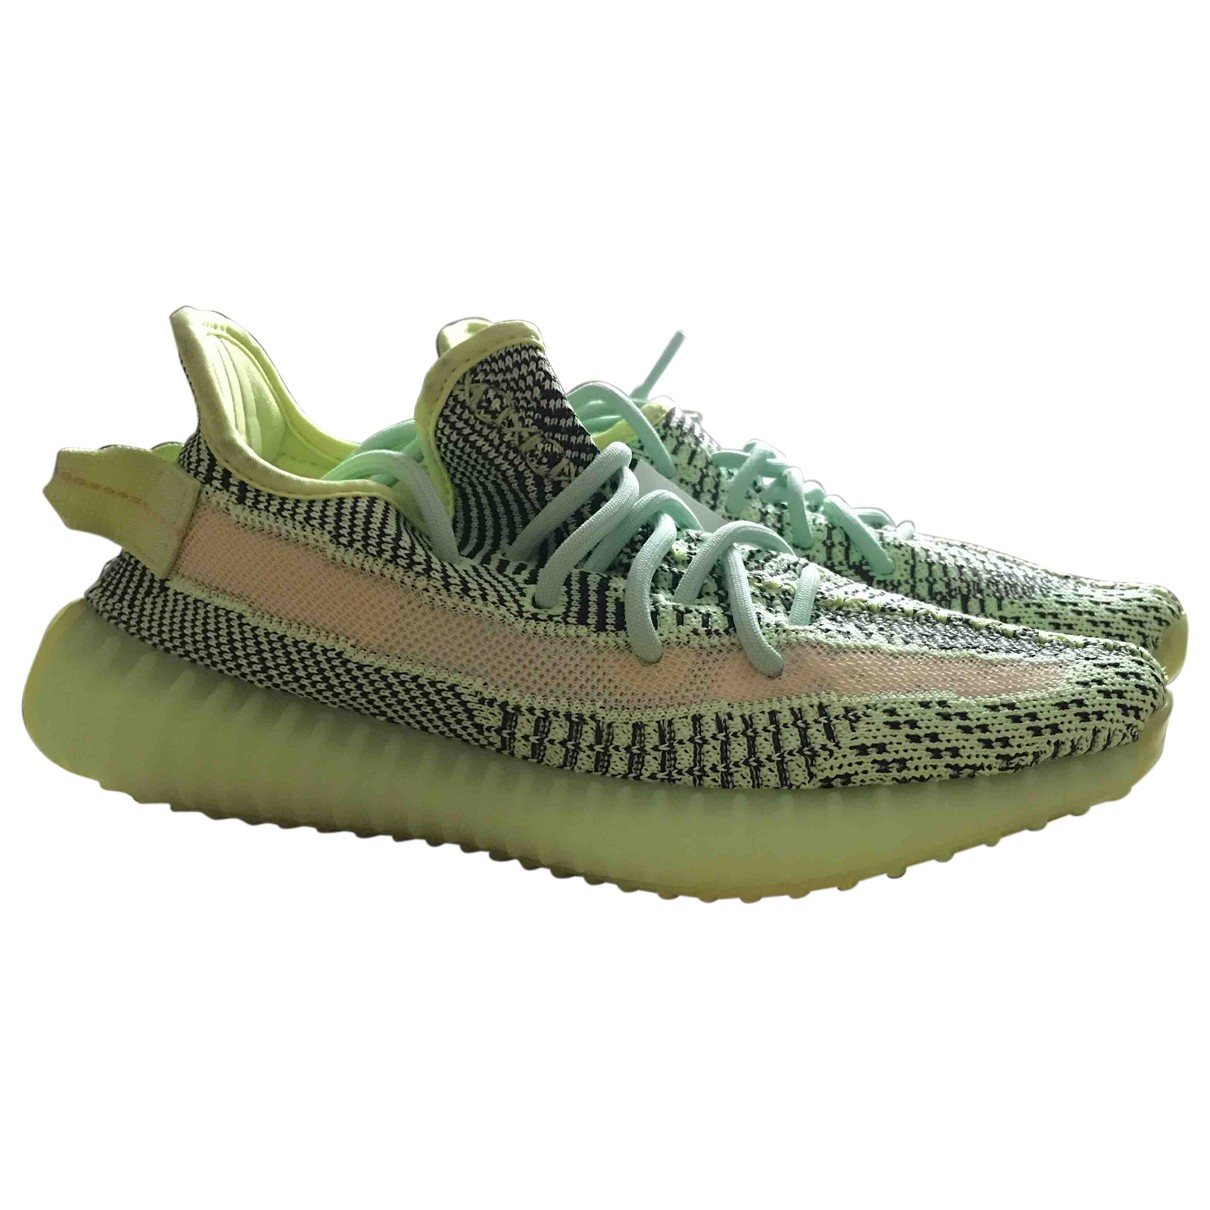 Yeezy X Adidas Boost 350 V2 Yellow Cloth Trainers for Women 38.5 EU